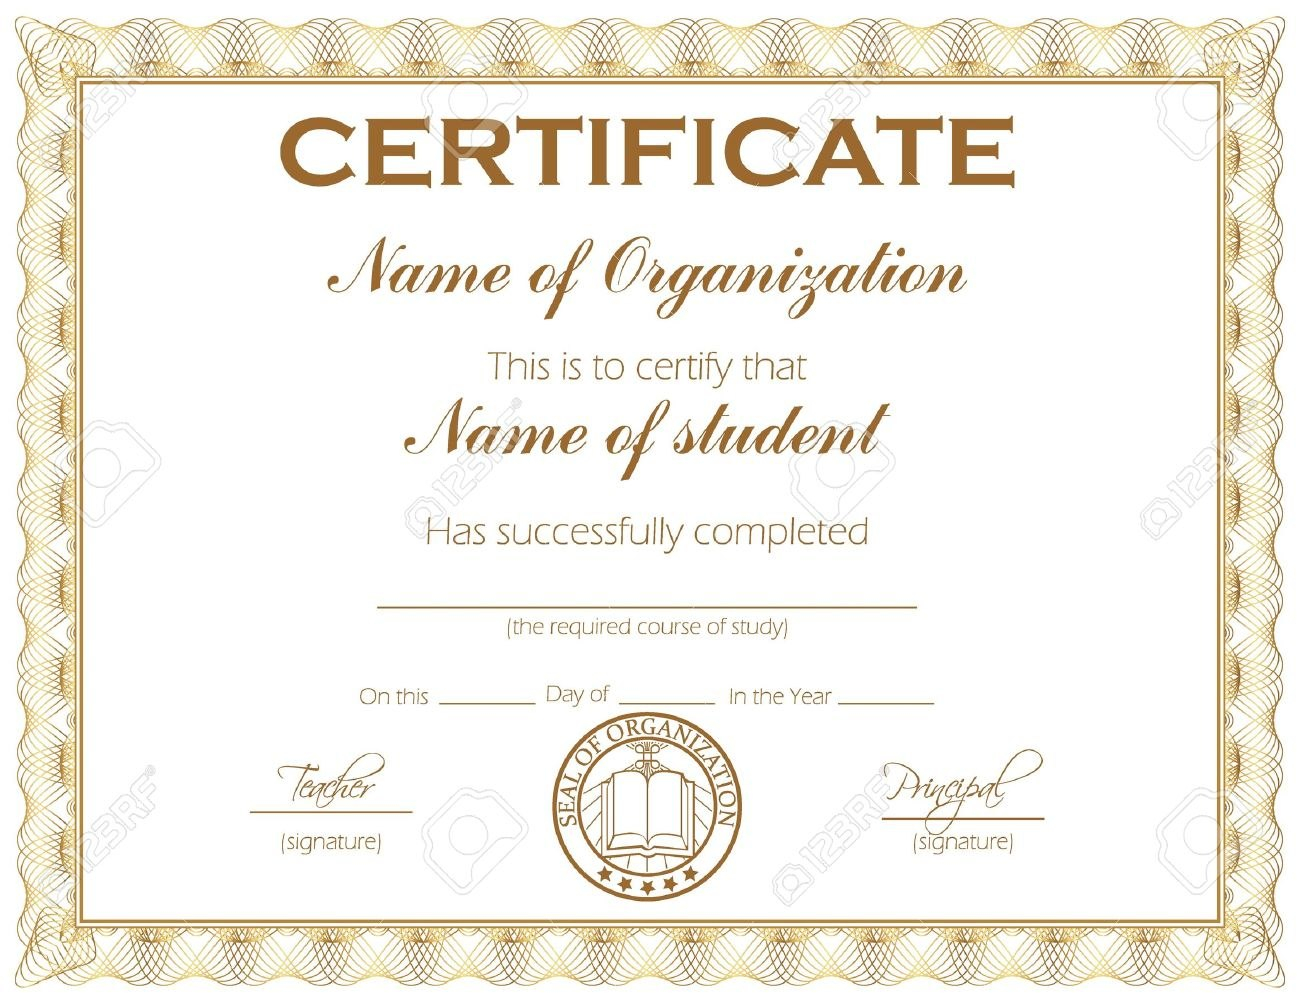 General Purpose Certificate Or Award With Sample Text That Can In Academic Award Certificate Template